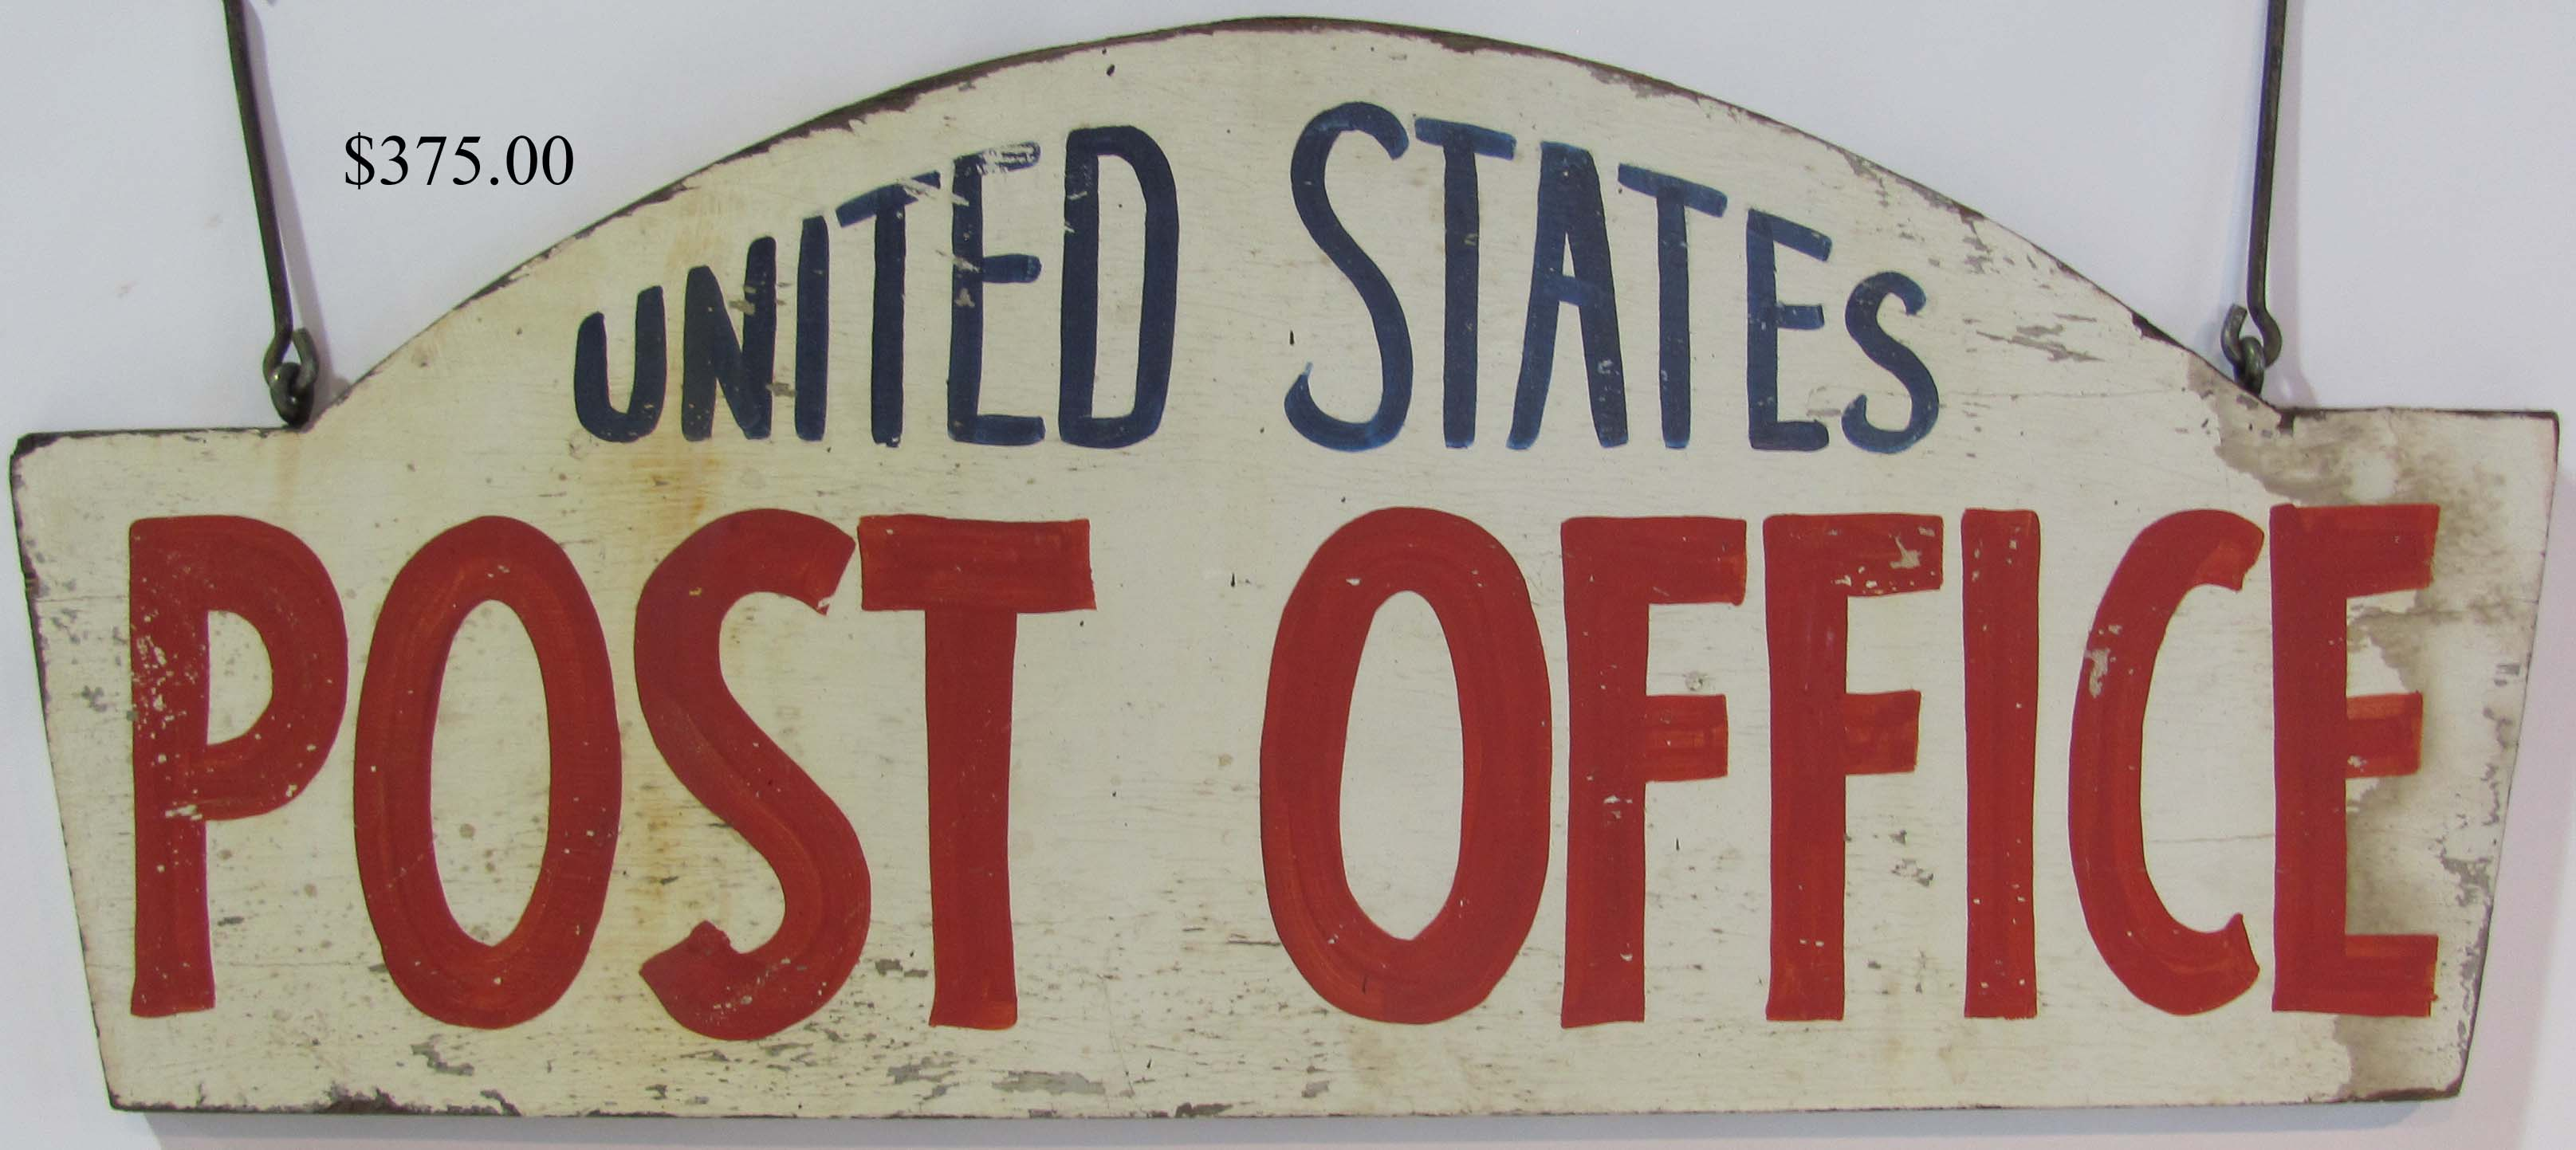 Brand-new Lot.228.Post.Office.sign.jpg CP56